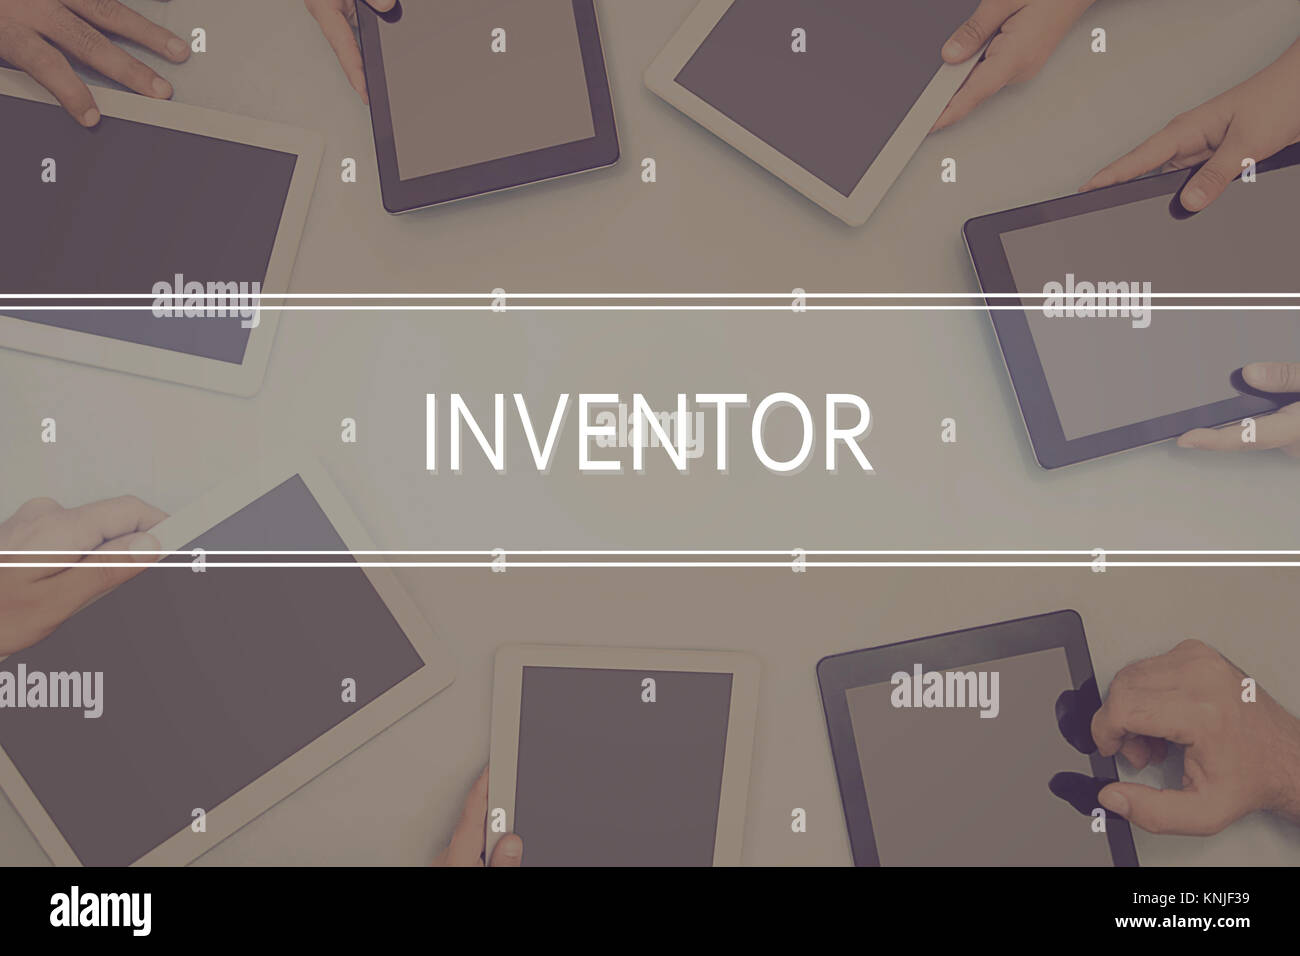 INVENTOR CONCEPT Business Concept. - Stock Image